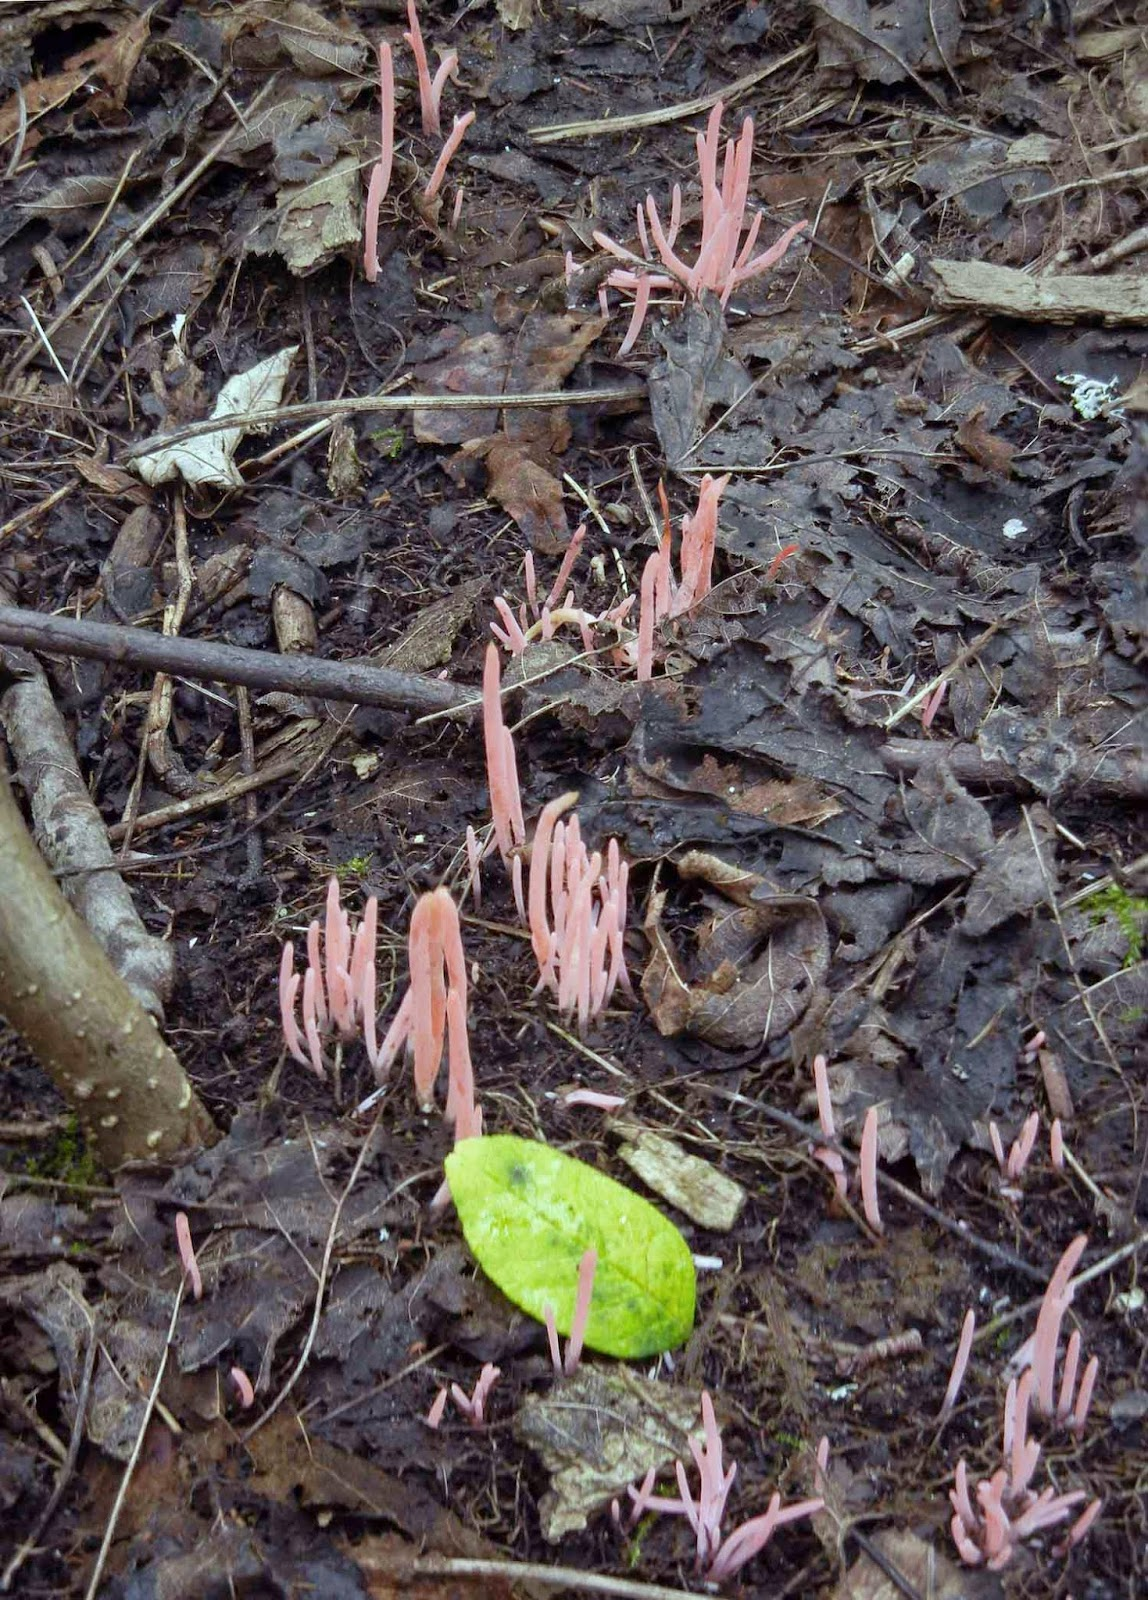 The pink worm coral, Clavaria rosea